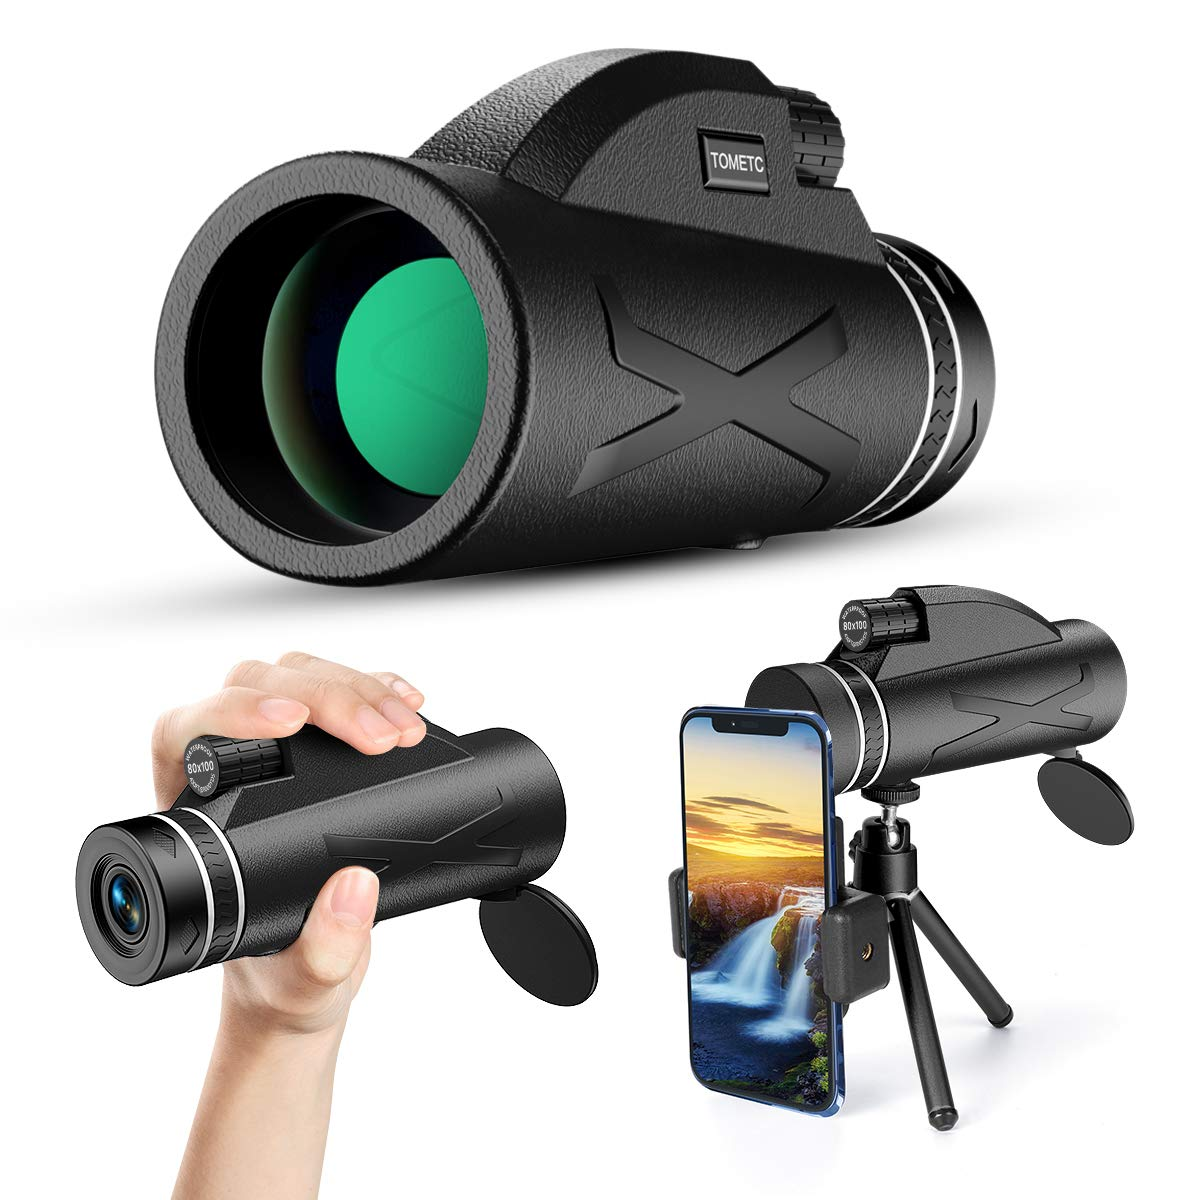 Monocular Telescope, 80x100 High Power Prism Monocular HD Dual Focus Scope Portable Waterproof Fogproof with Smartphone Holder & Tripod for Bird Watching Hunting Camping Travelling Wildlife Secenery